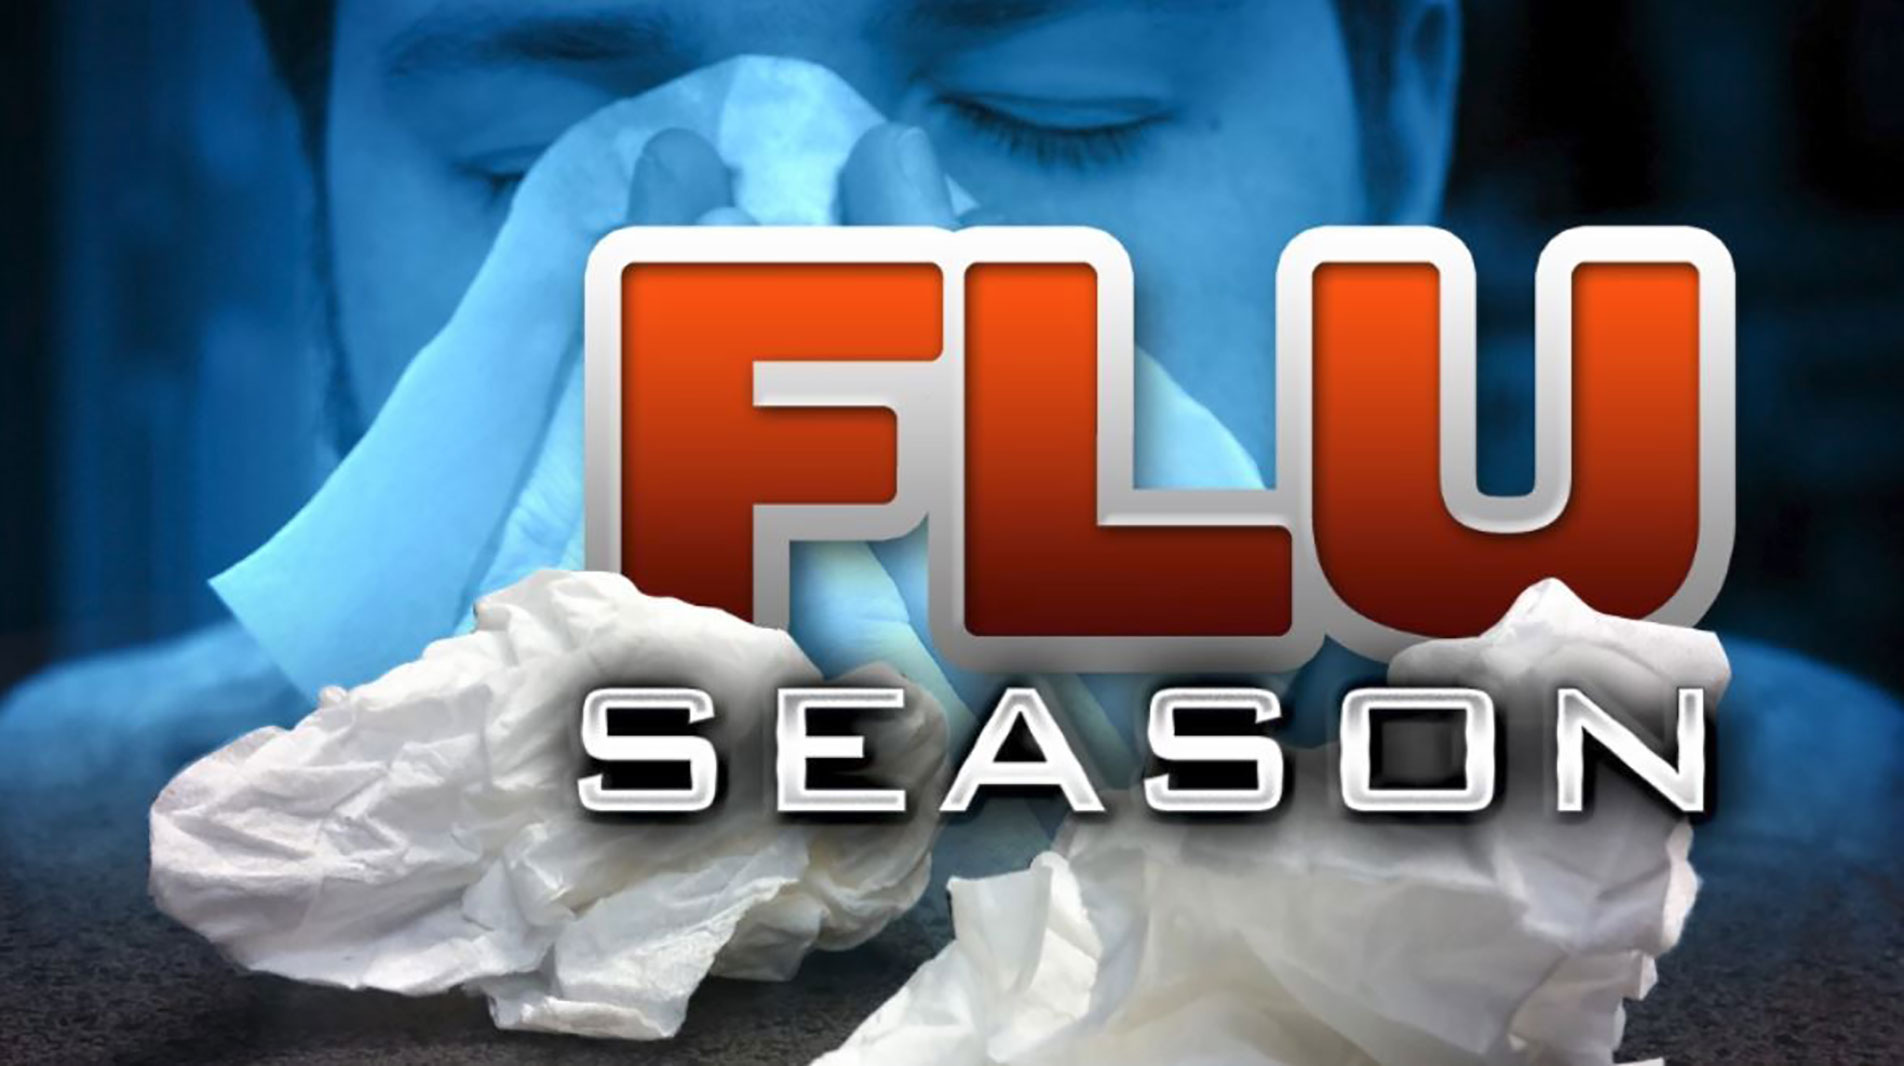 The flu remains high in Northwest Louisiana | ArkLaTexHomepage